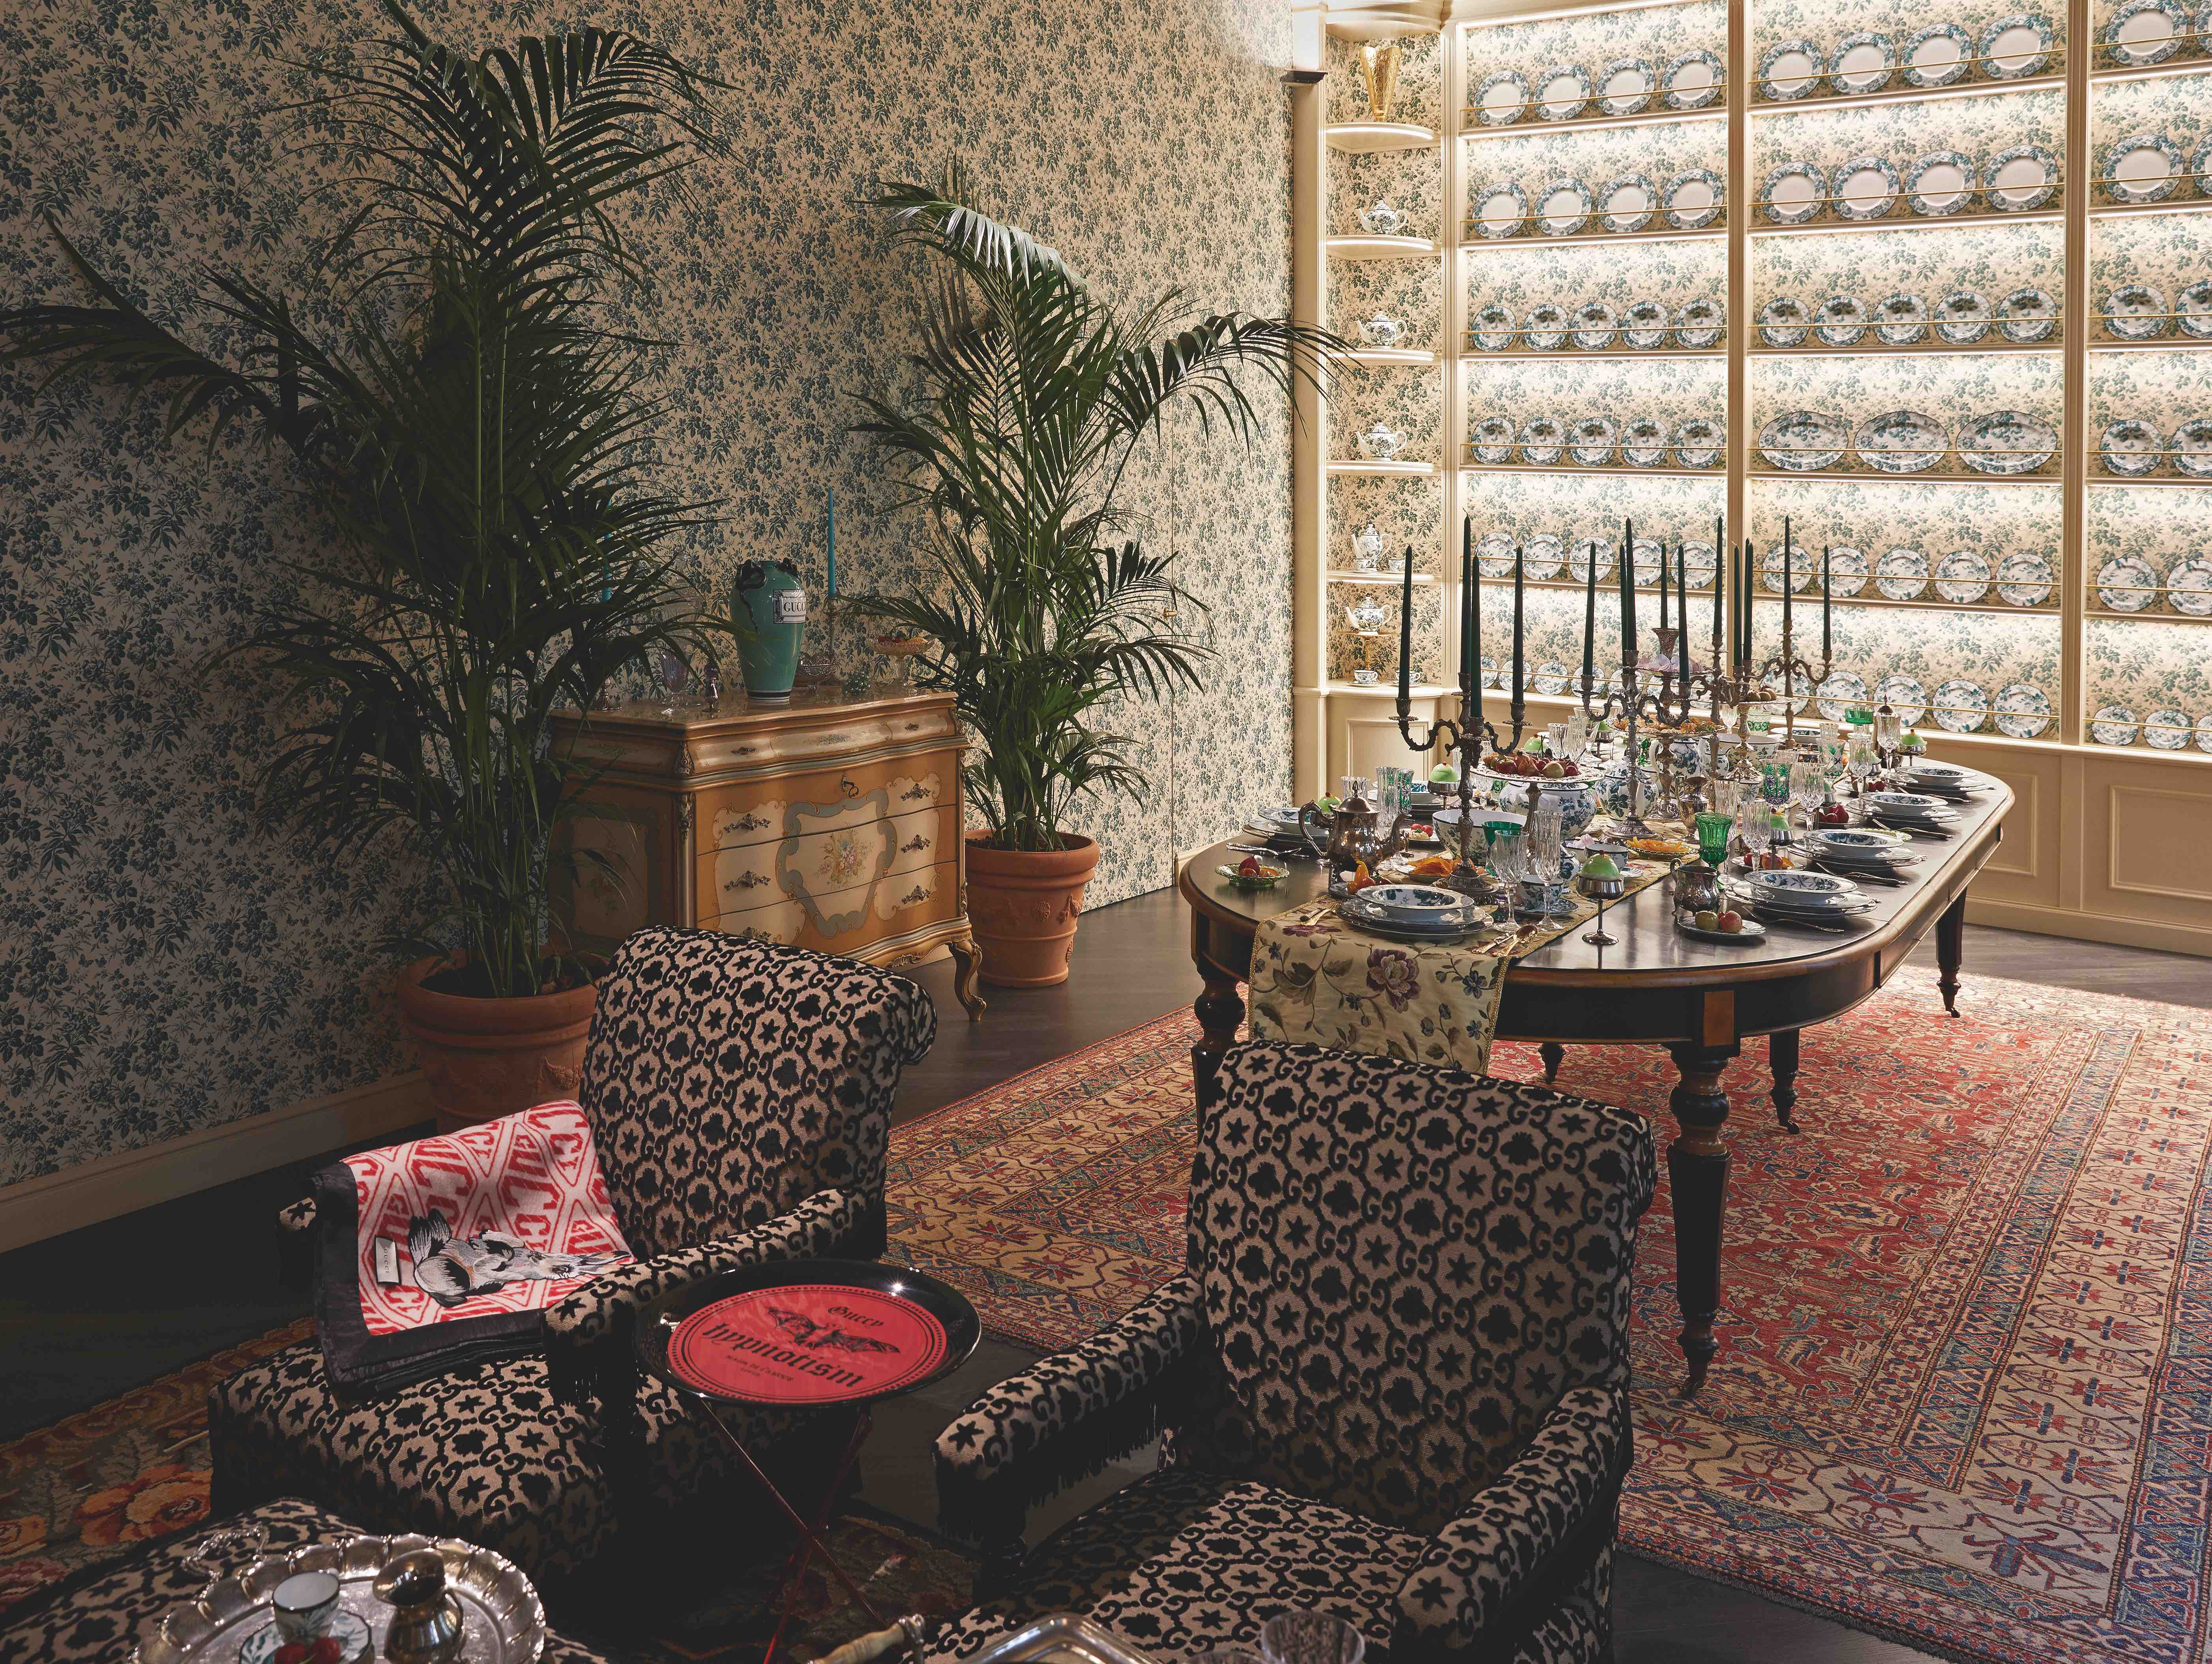 Gucci homeware pop-up table and chairs